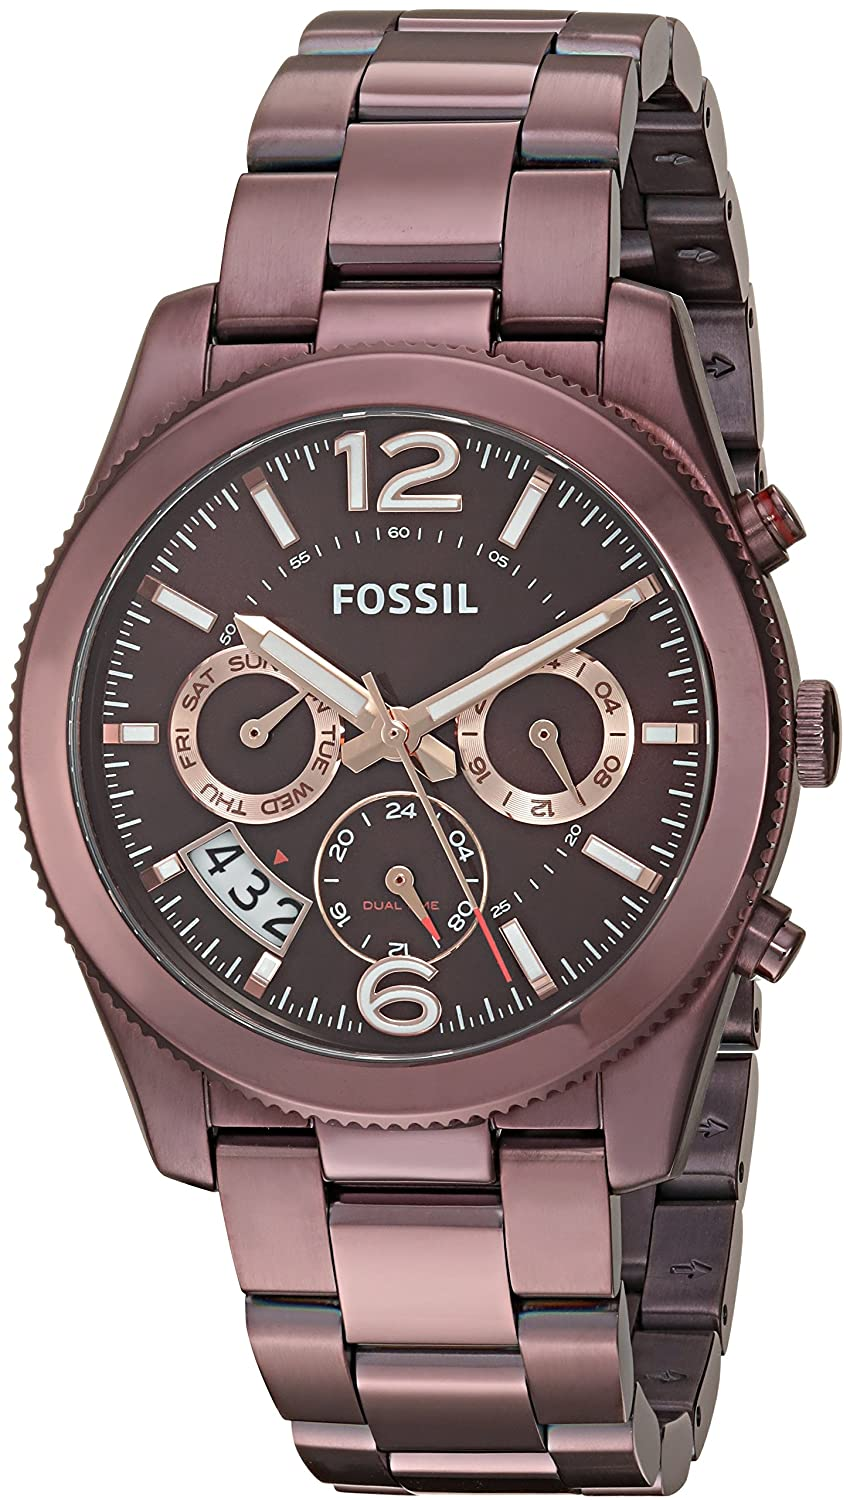 Fossil Big Tic Watch Prices Stainless Steel Analog Breaker Fs 5049 Amazon Com Women S Es4110 Perfect Boyfriend Sport